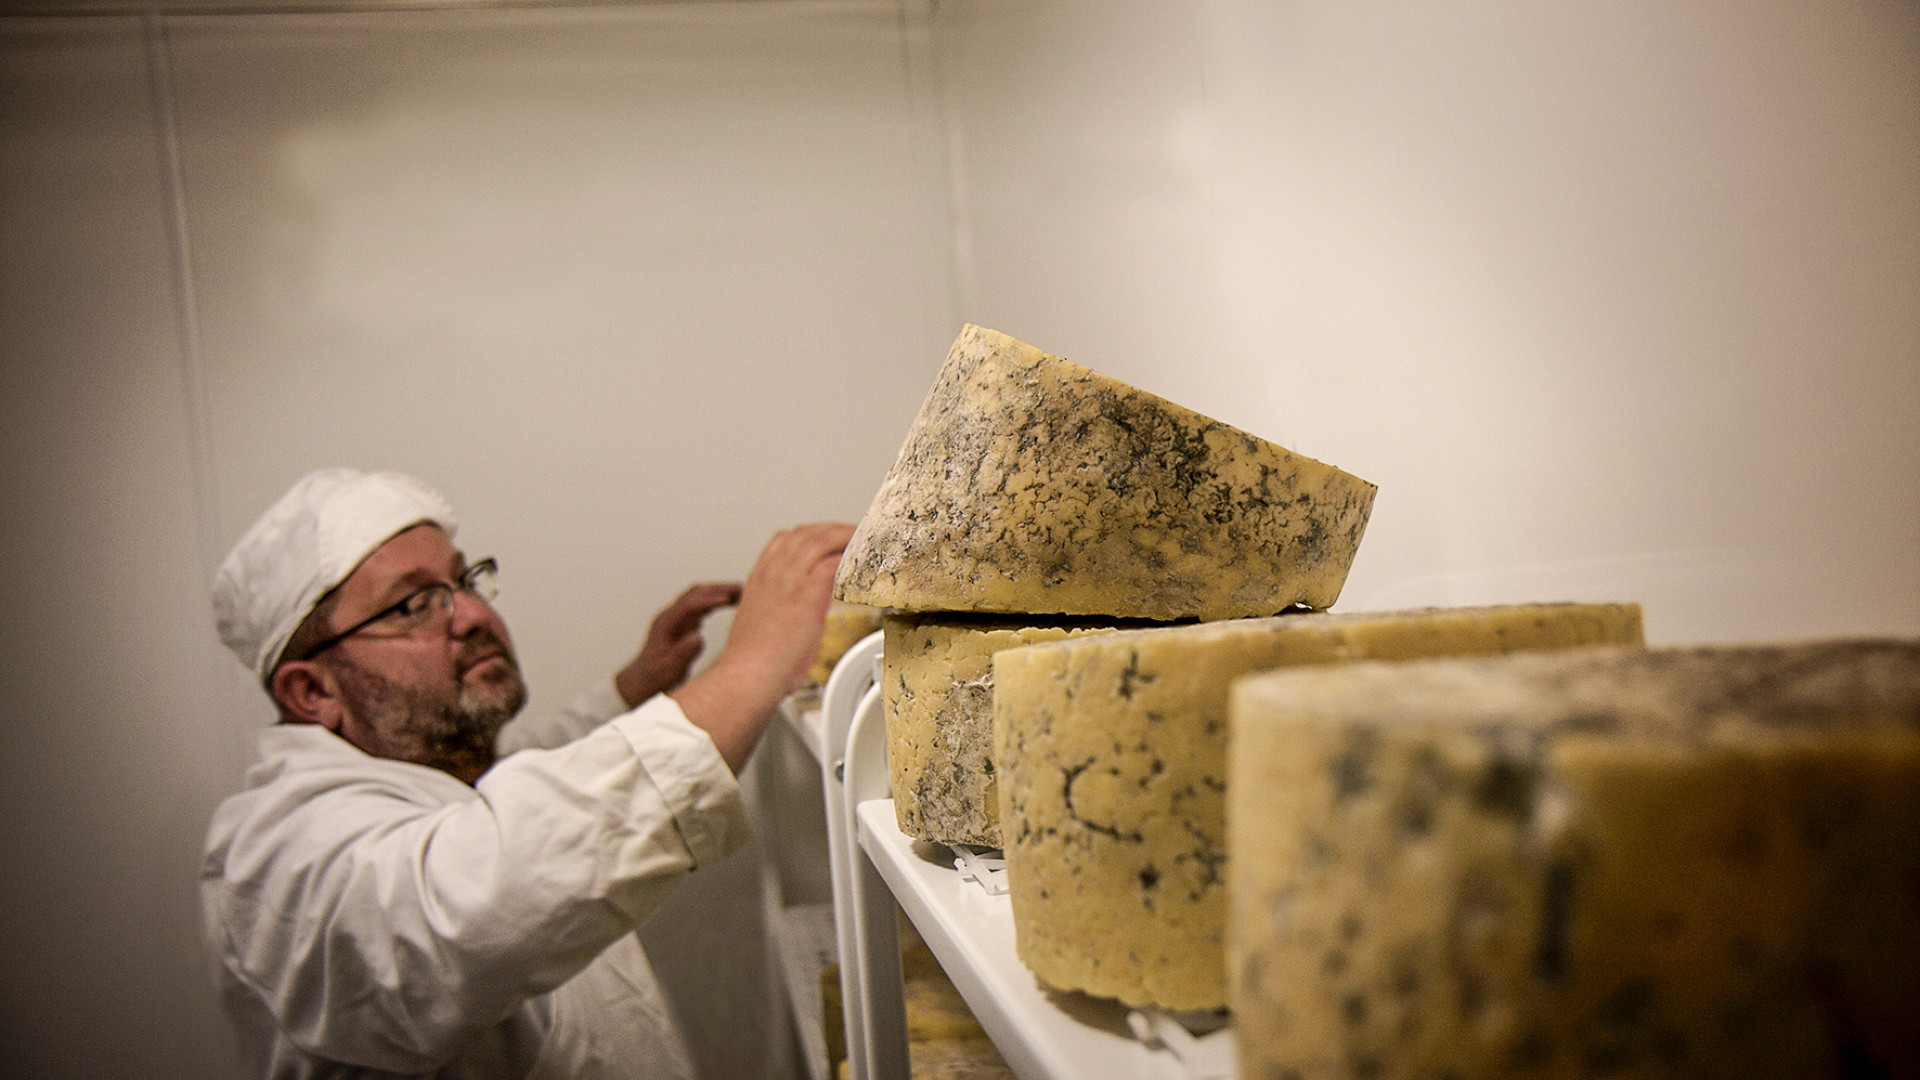 New-school cheese: Wildes